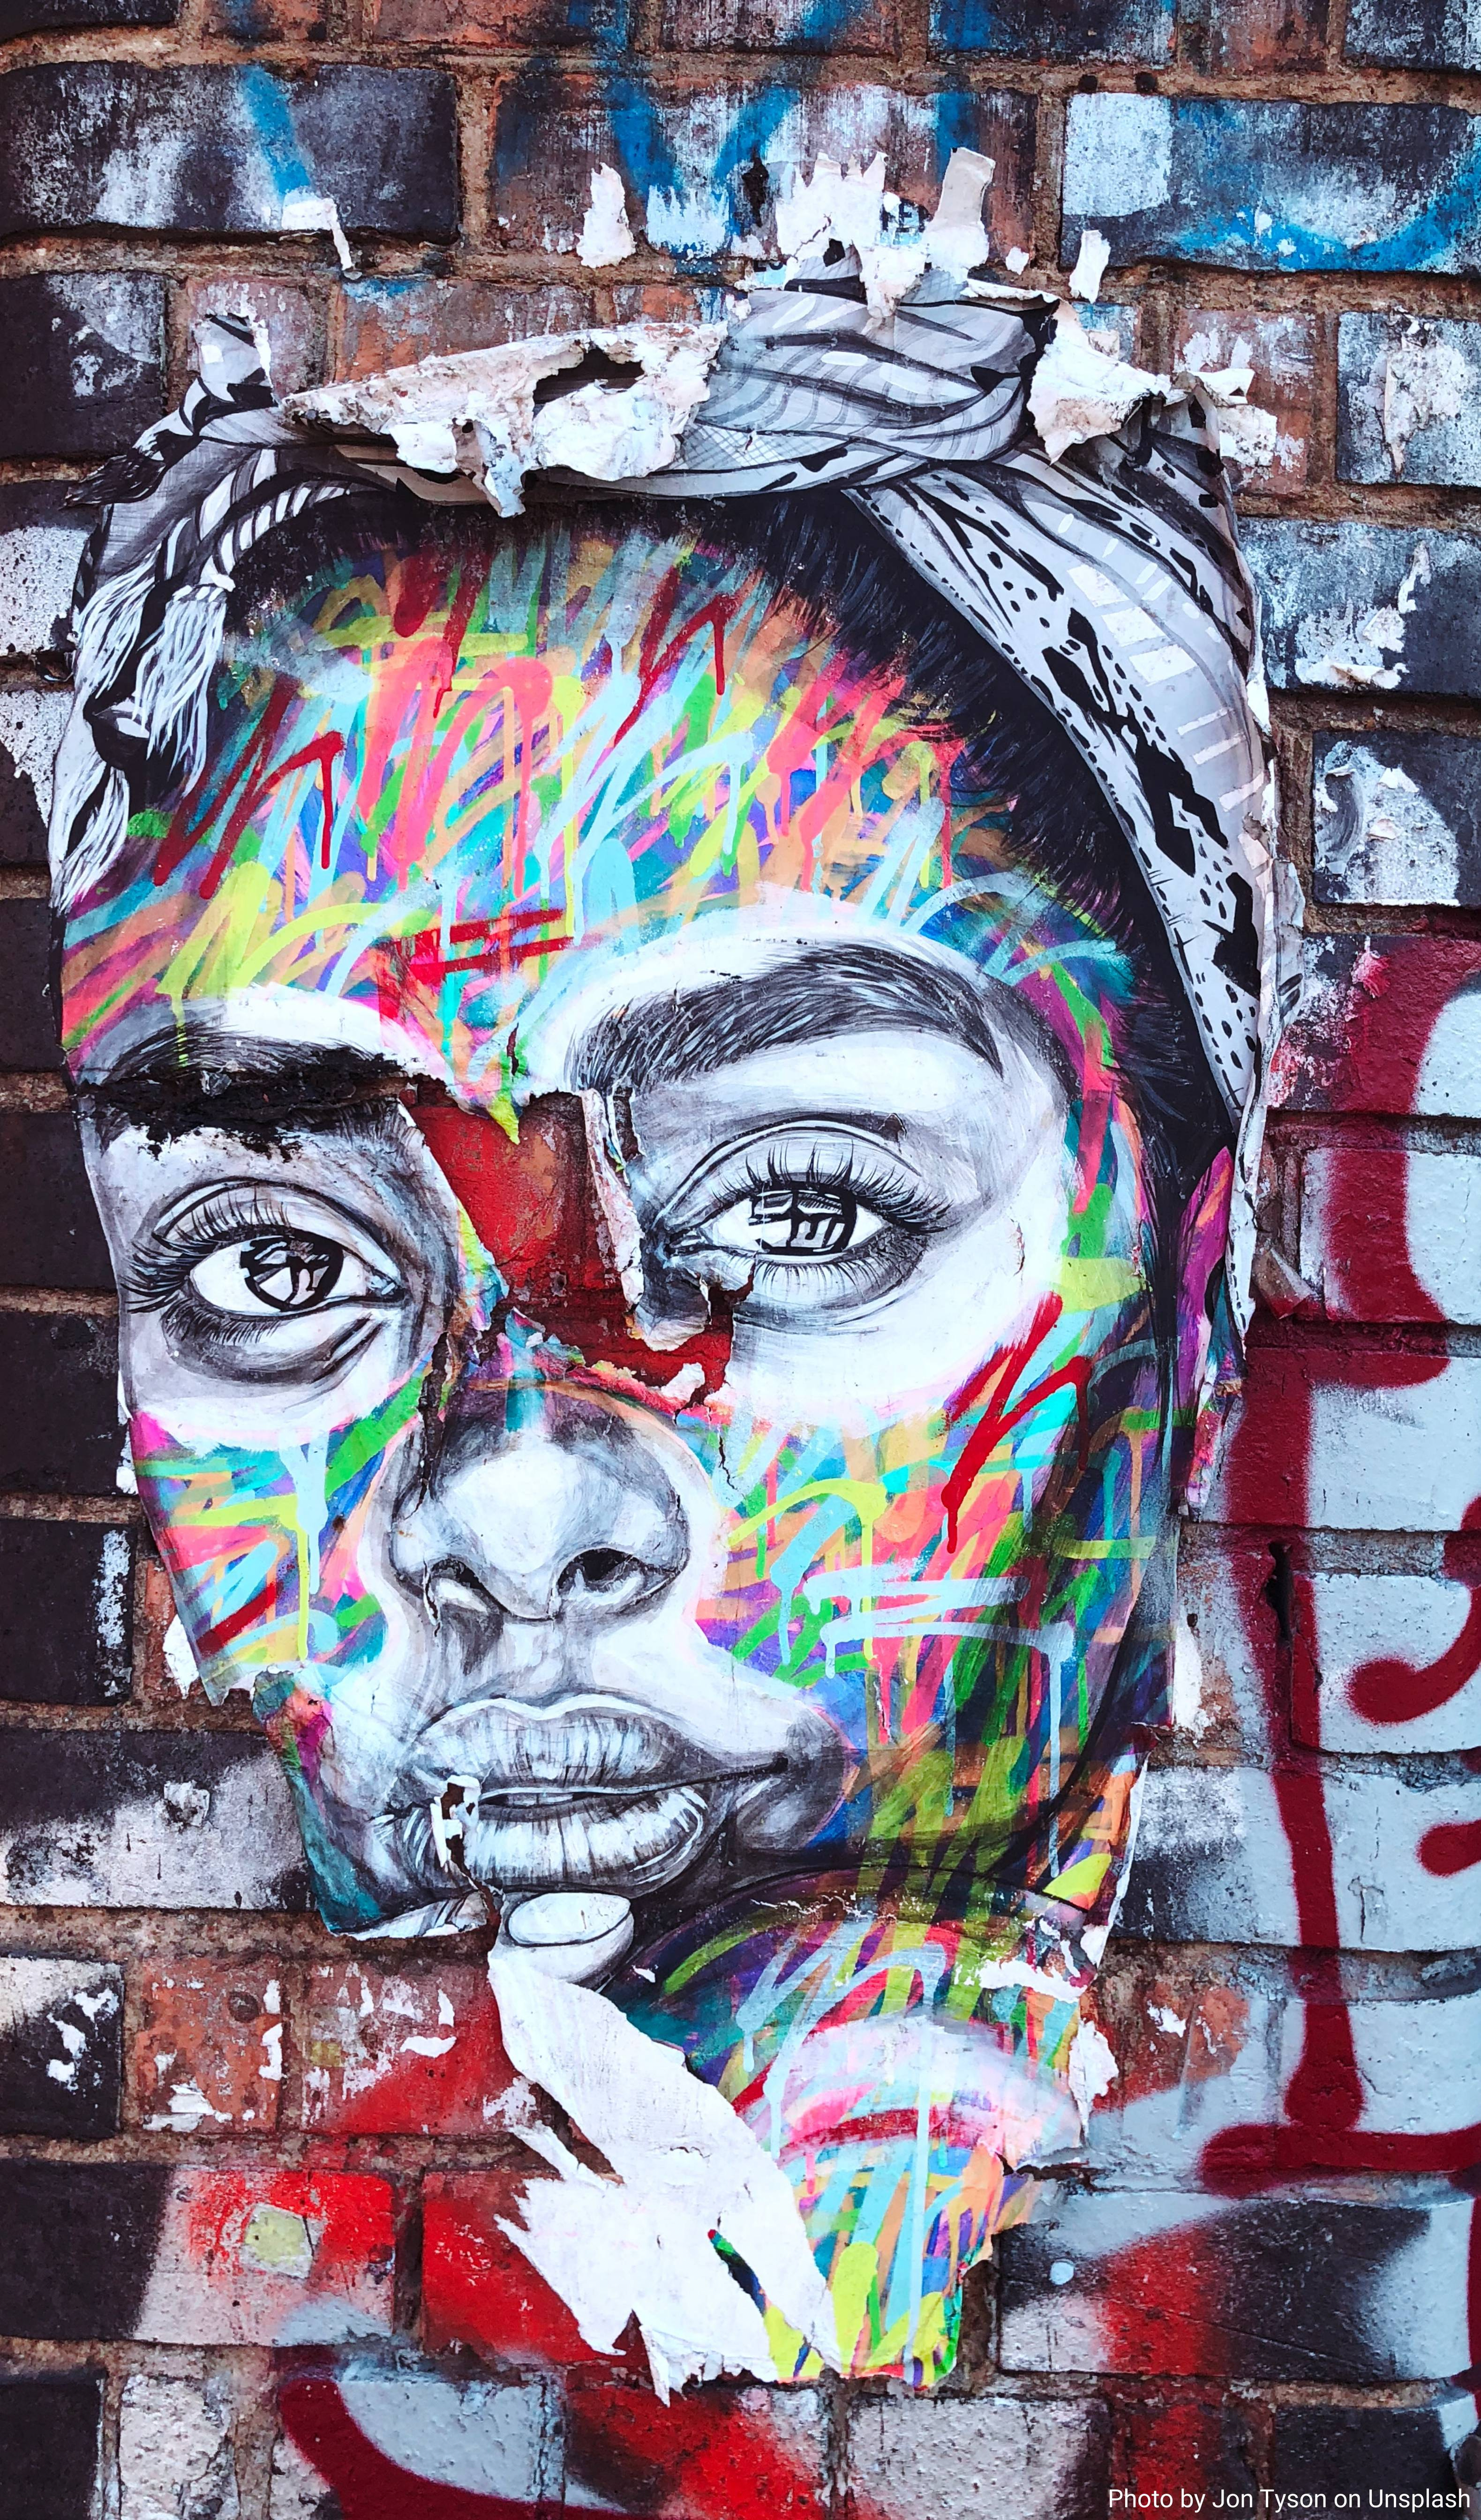 Street art image of a woman